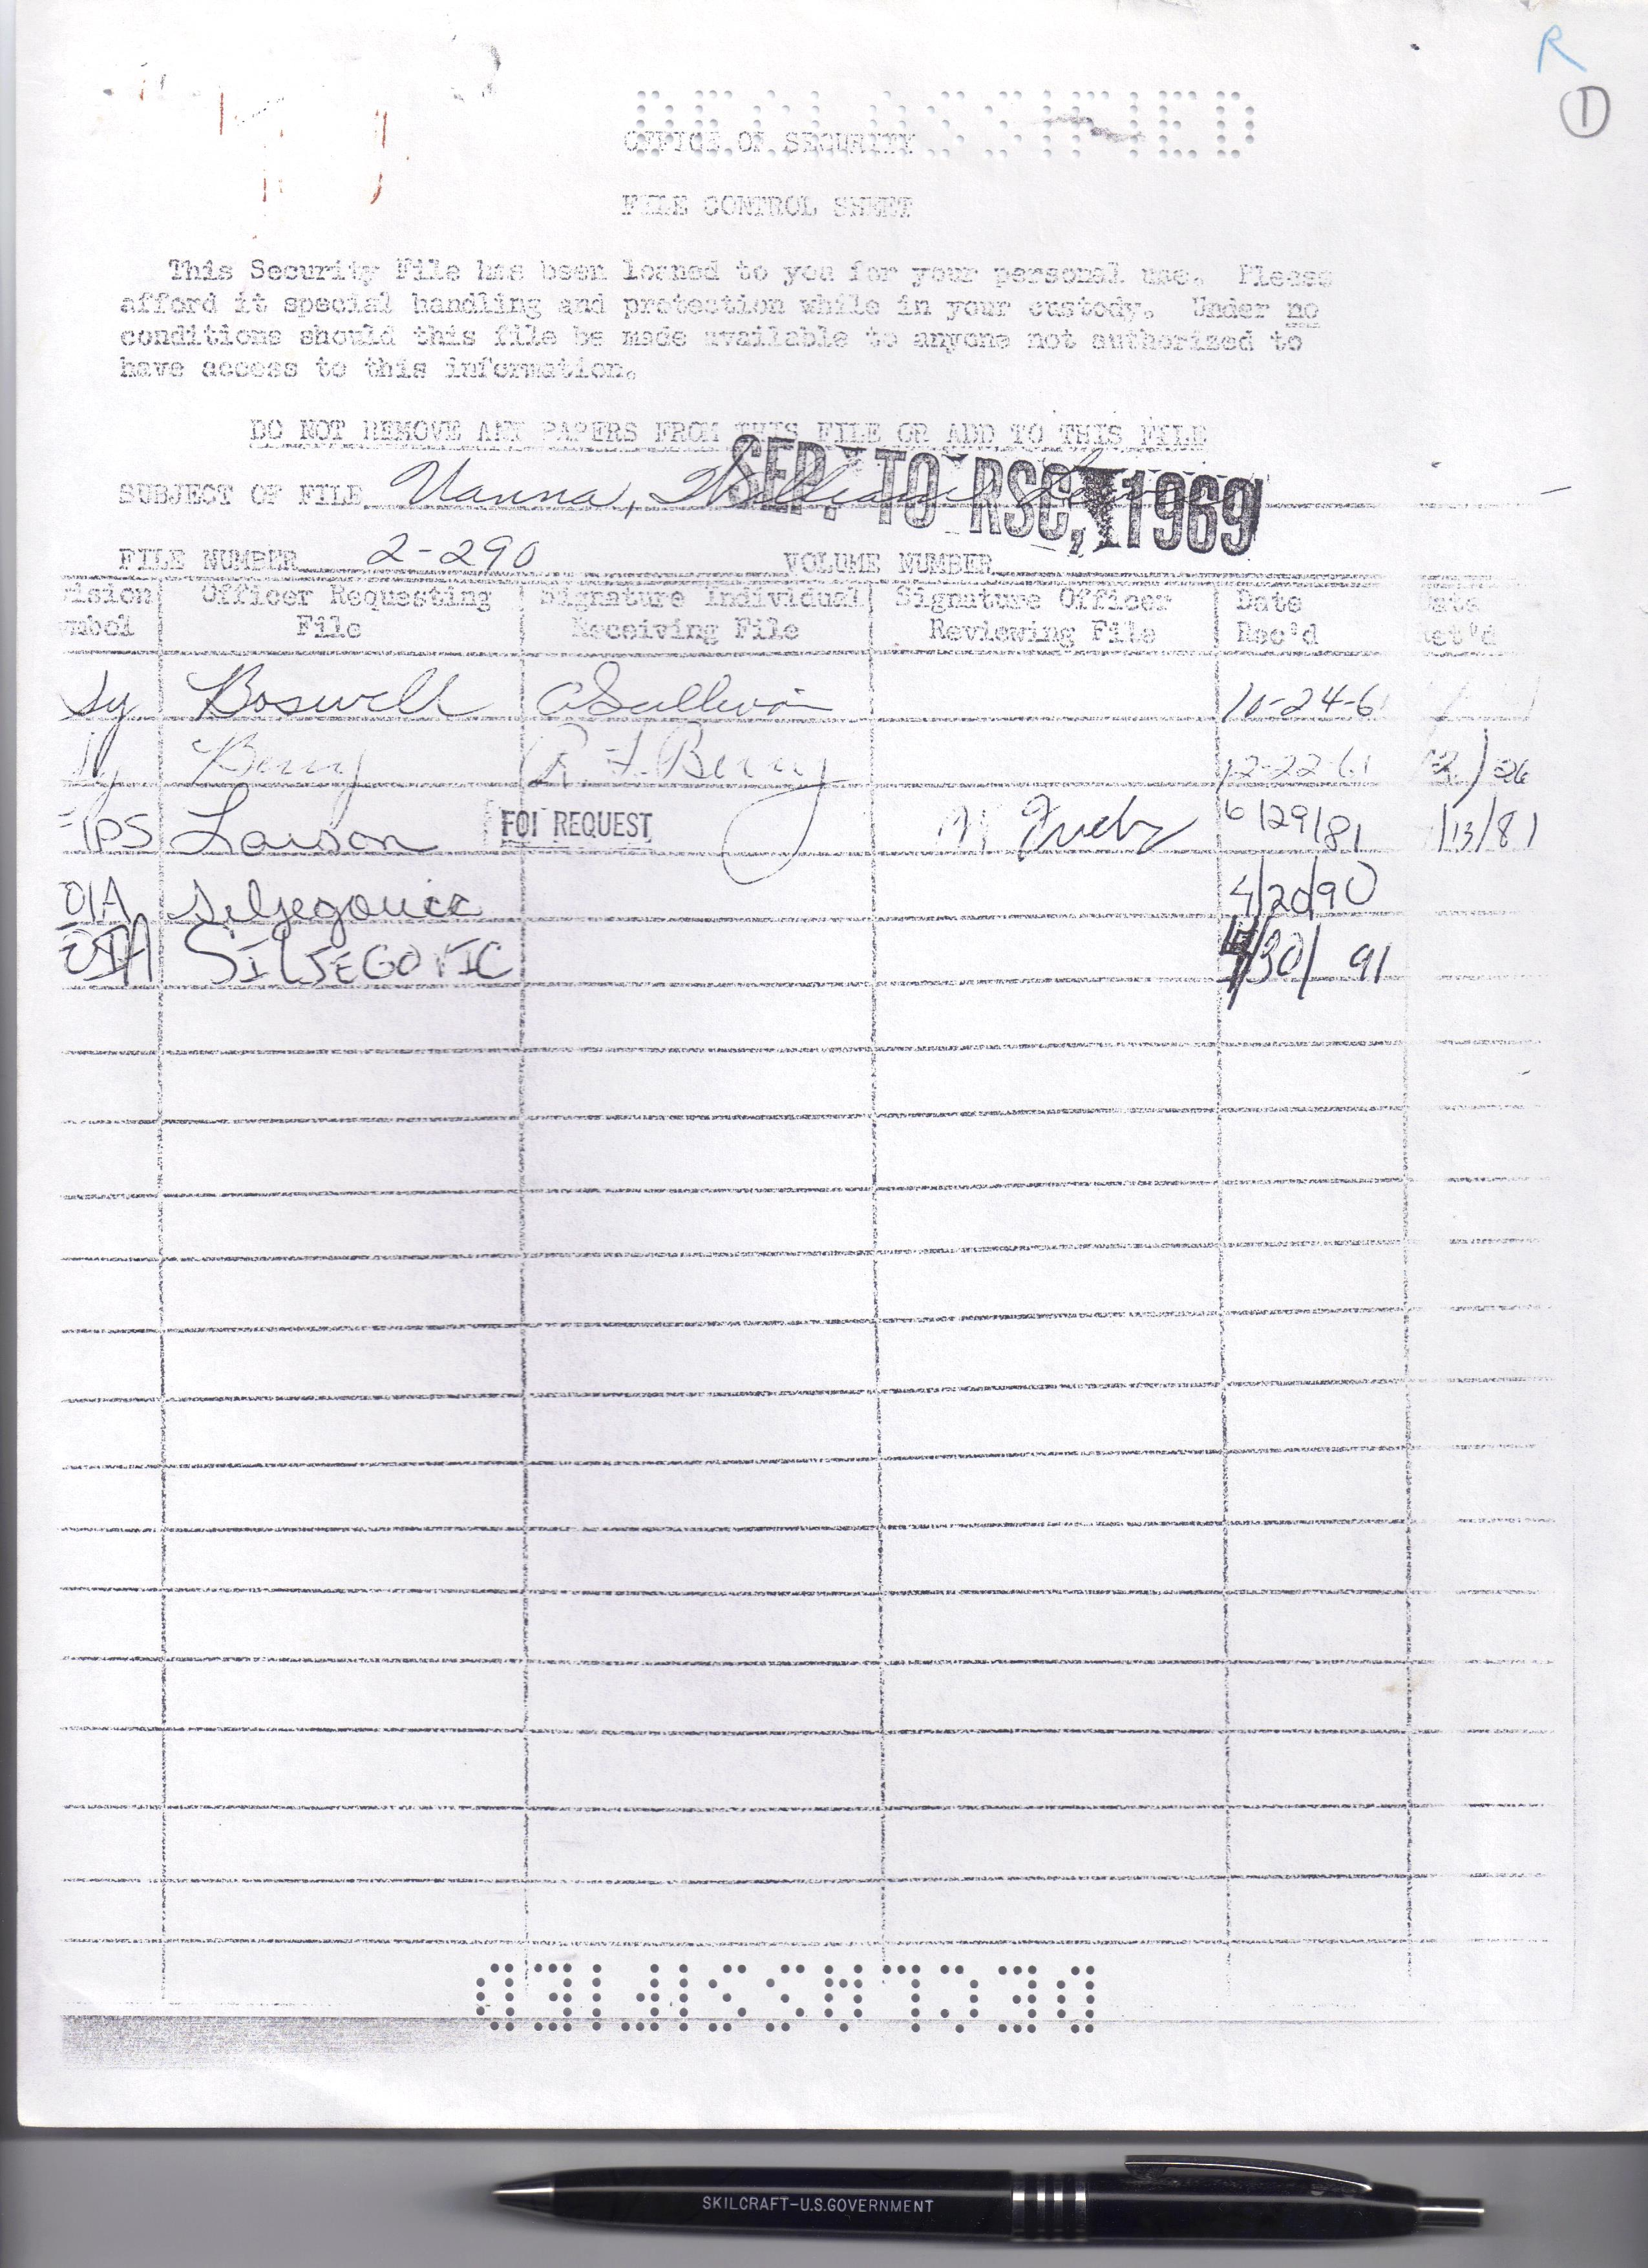 File:Bud Uanna A Declassified Document - Cover Sheet from FOI ...